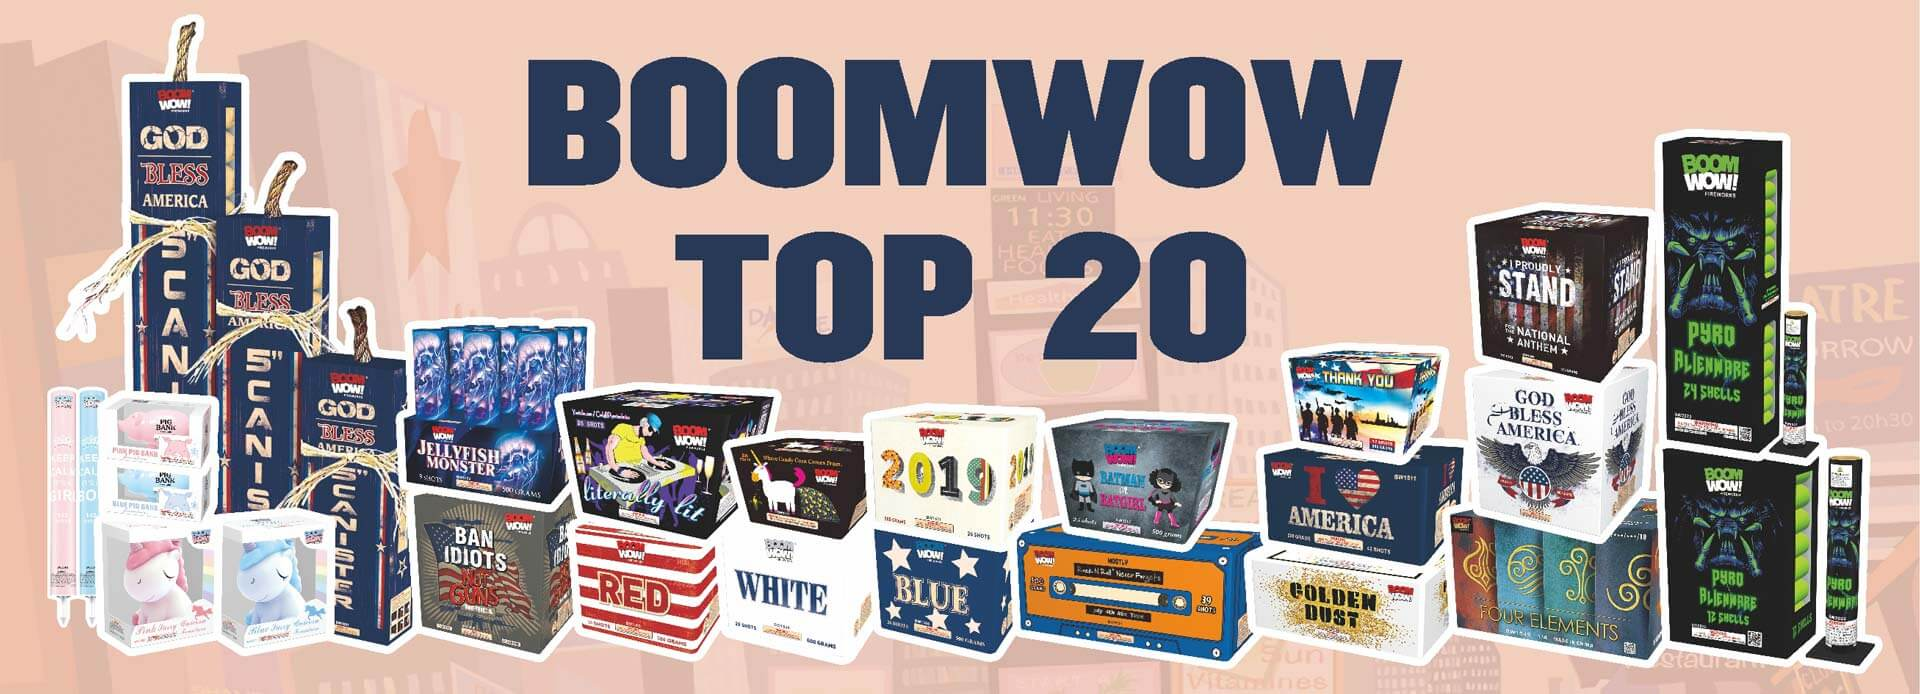 Boomwow